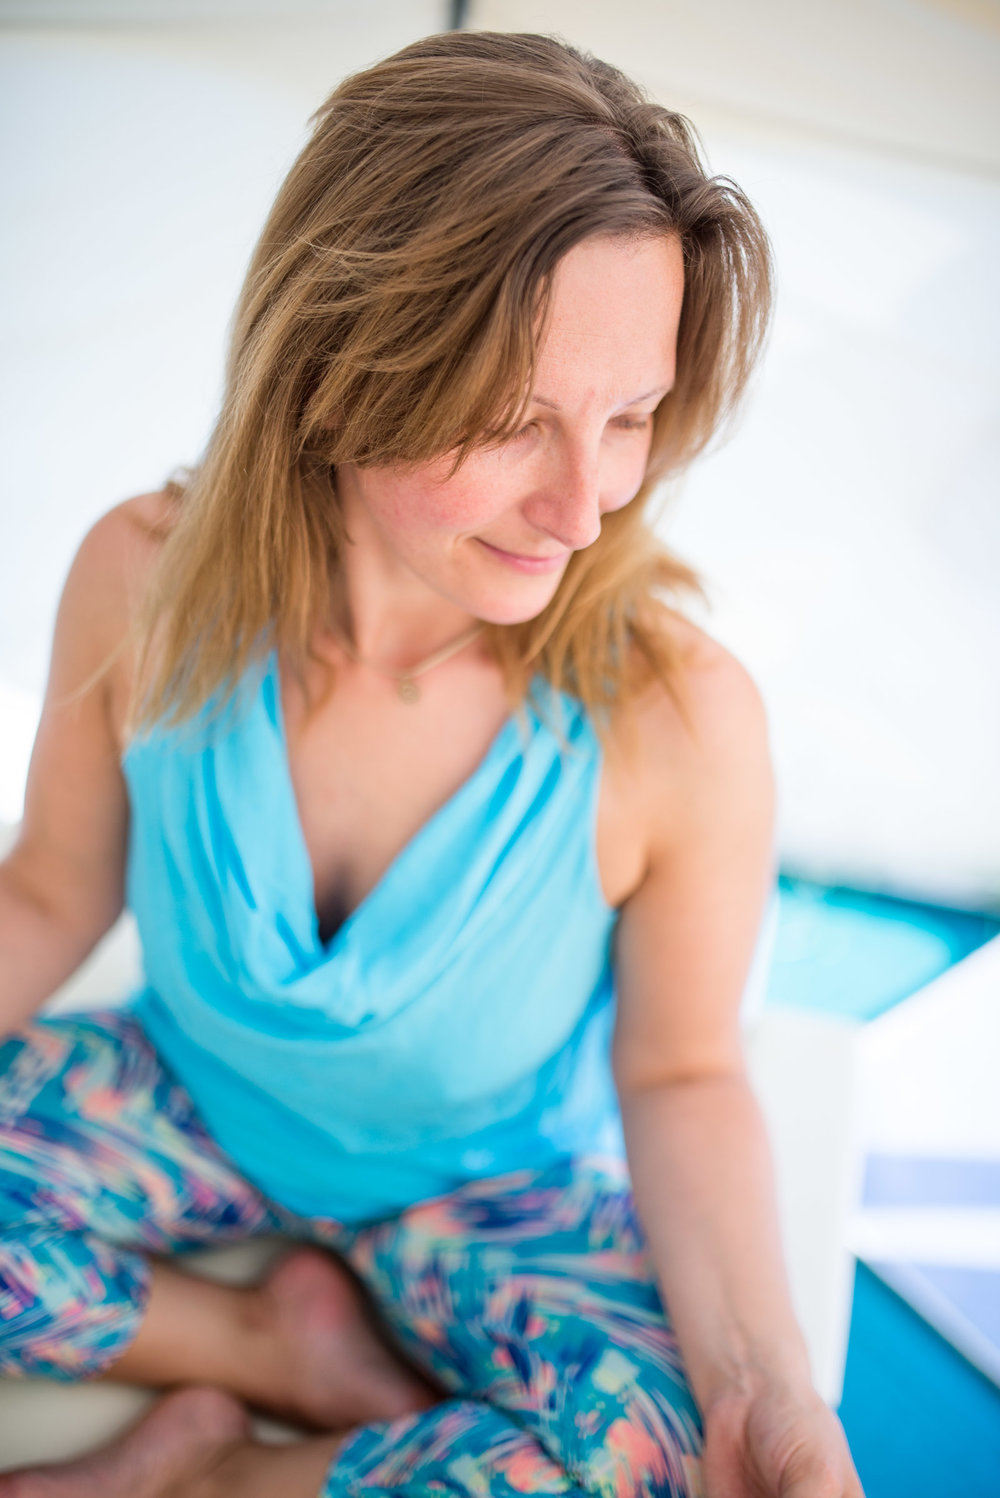 Personal Branding Photoshoot with Holistic Massage Therapist from Brighton, UK -